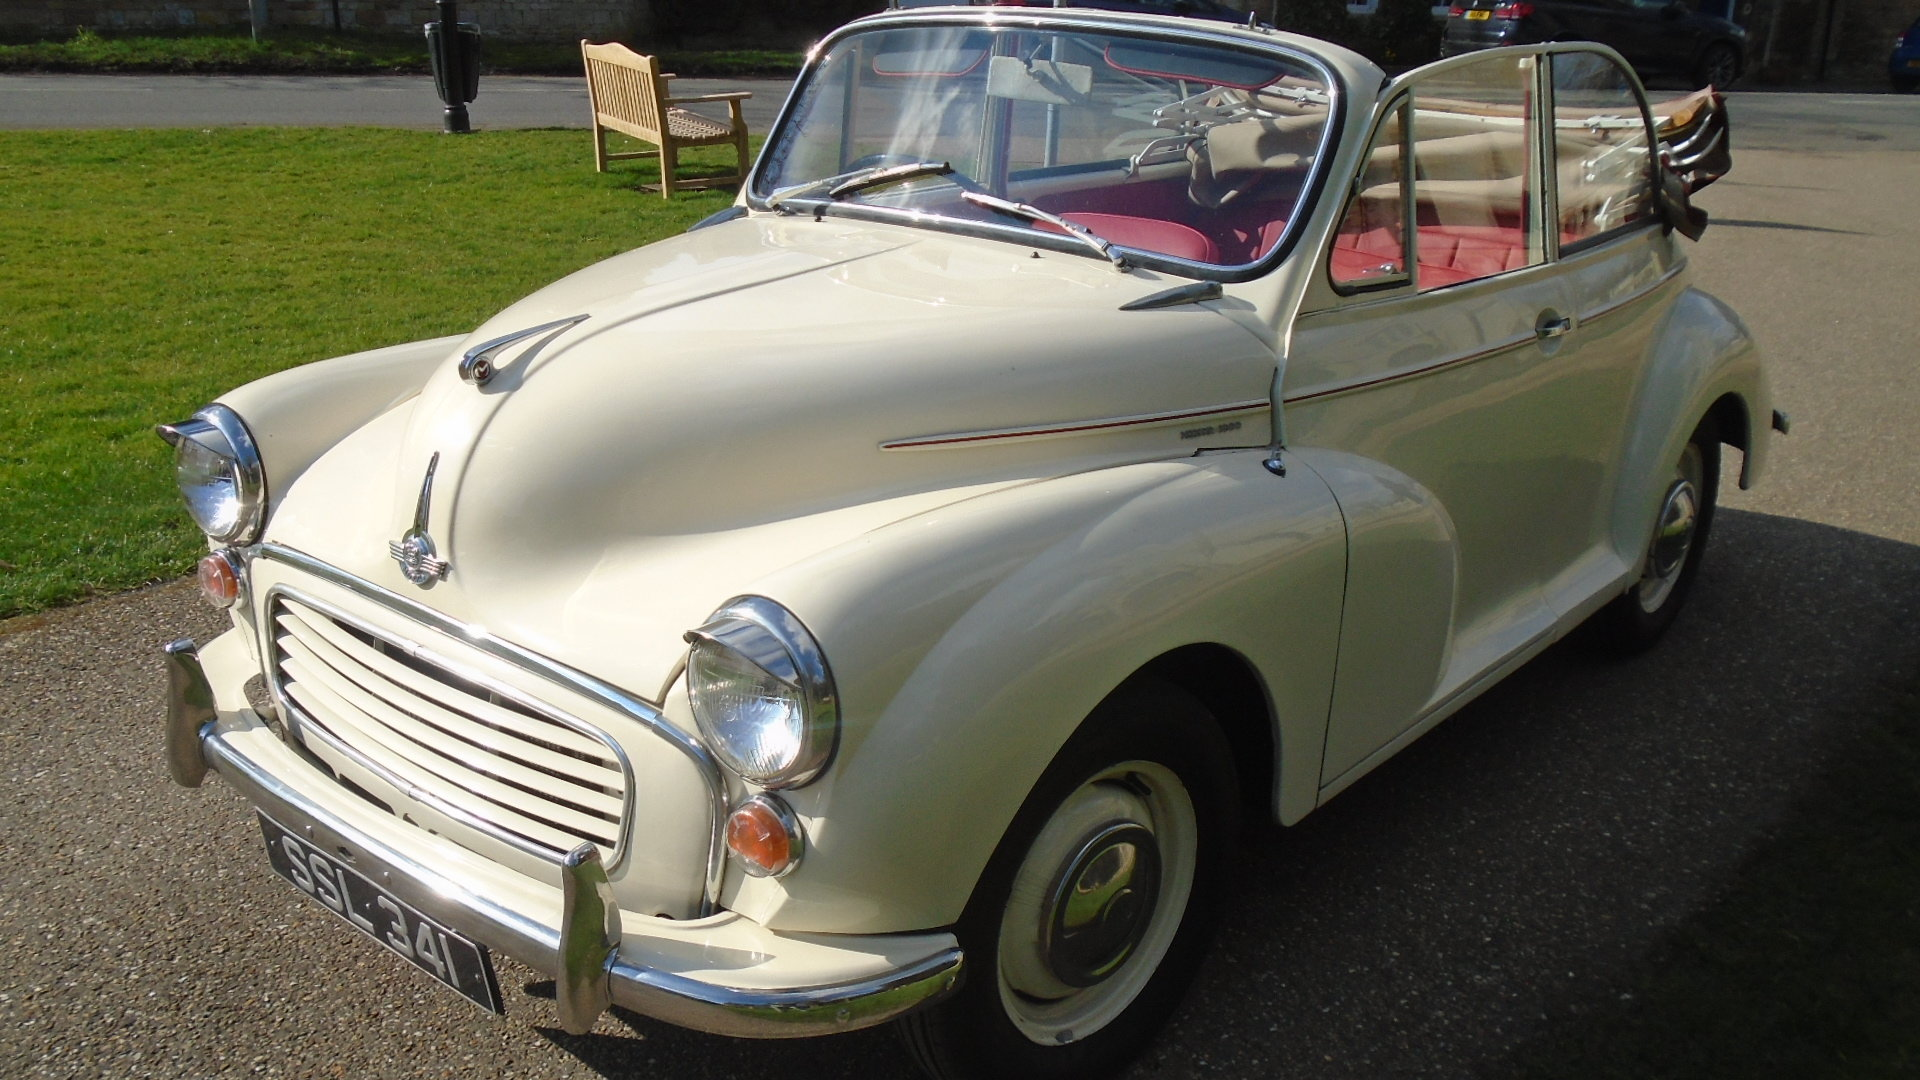 1962 Morris Minor Convertible, Genuine Tourer. For Sale (picture 2 of 10)